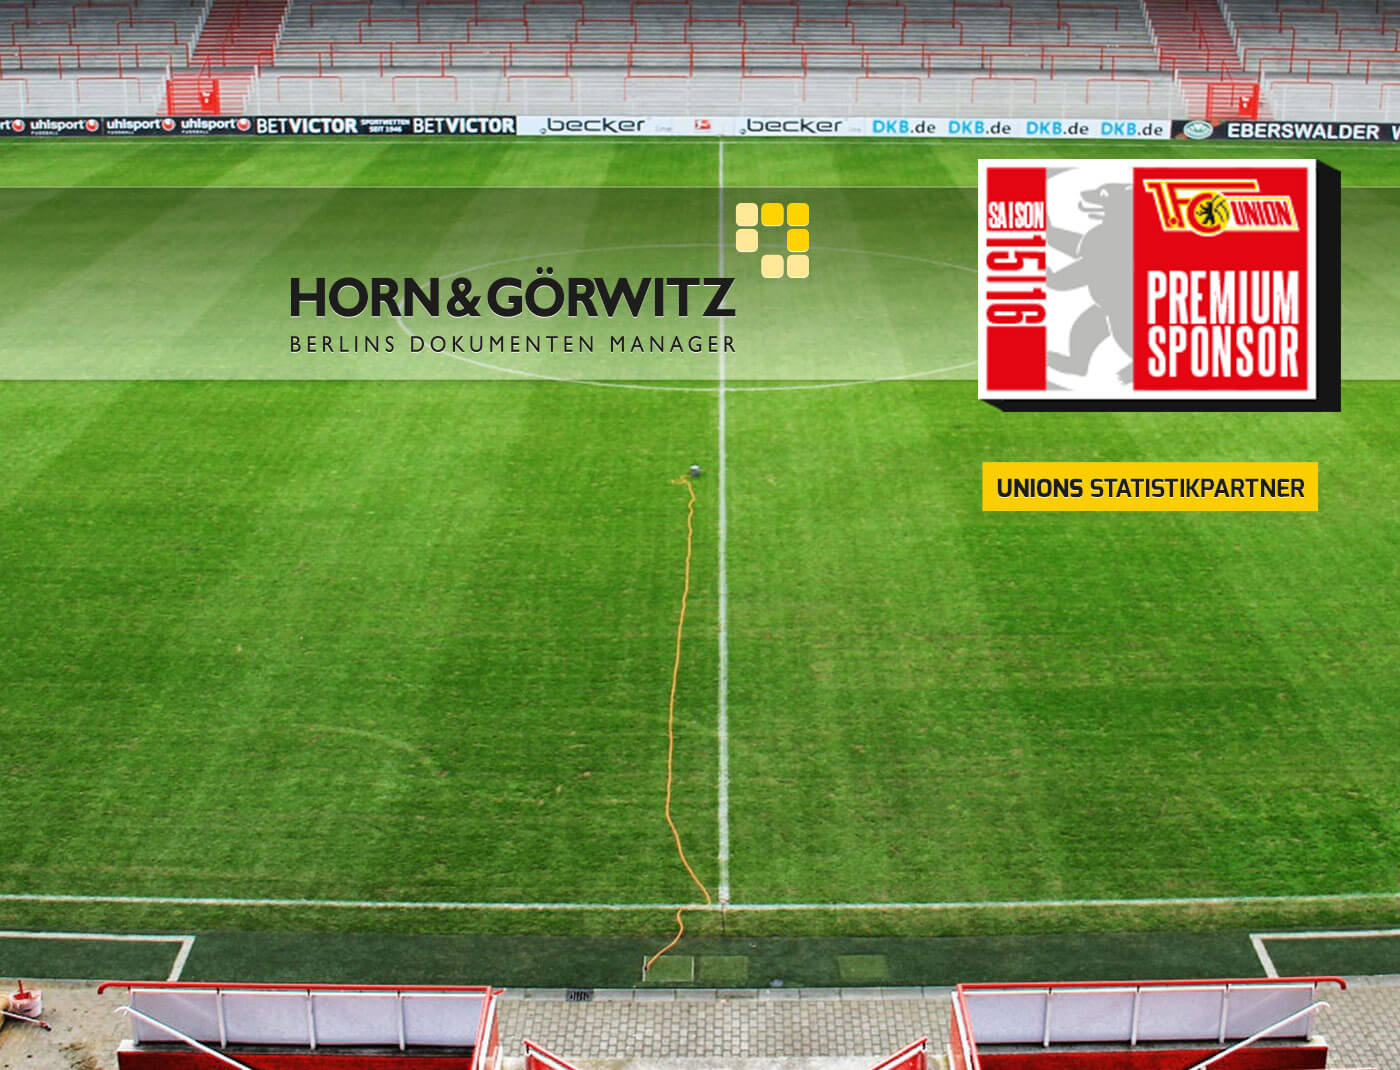 Horn & Görwitz - UNION Berlin